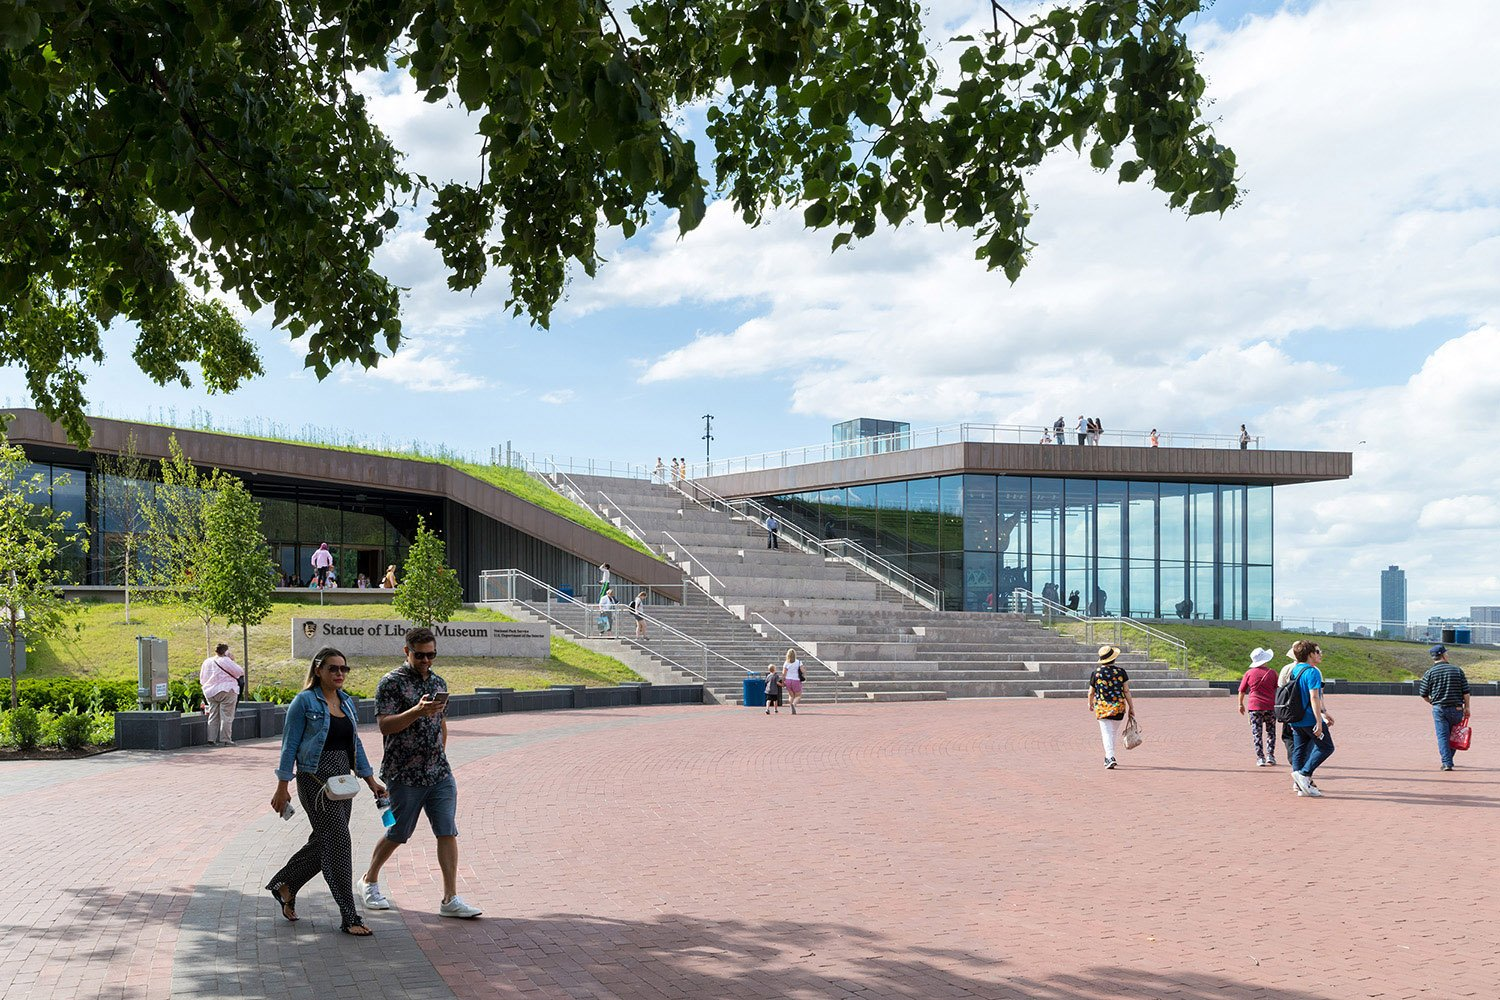 The Statue of Liberty Museum, viewed from the Flagpole Plaza. Copyright Iwan Baan